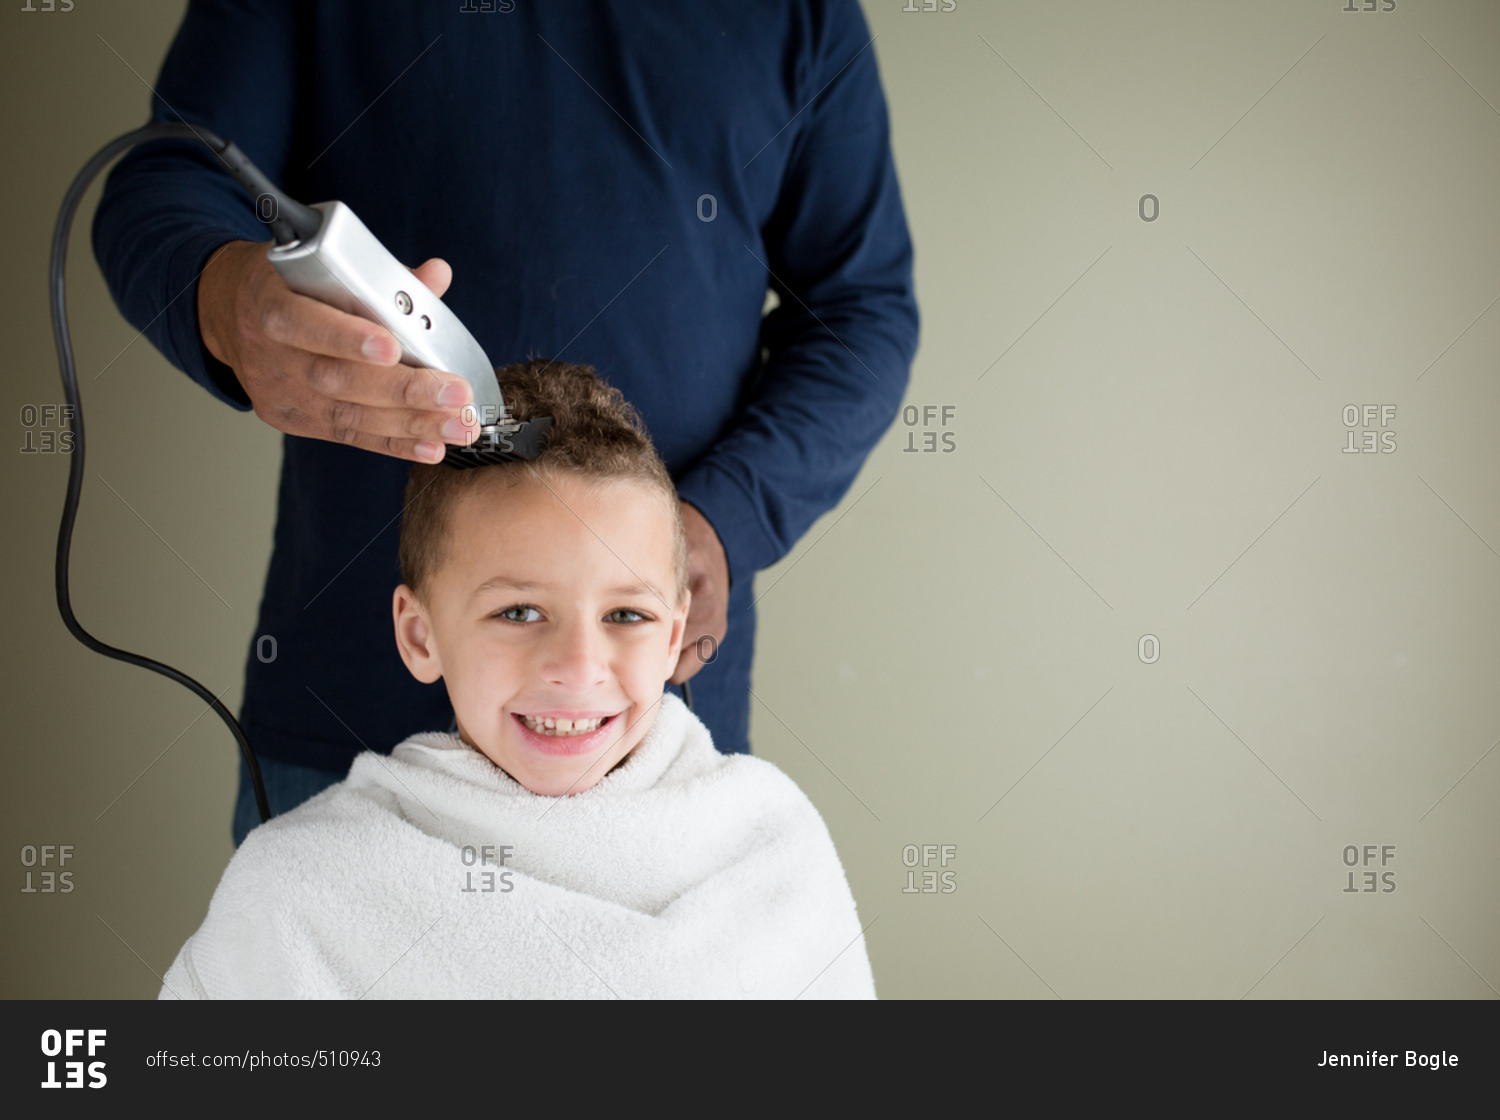 Smiling boy getting his head shaved with clippers during a home smiling boy getting his head shaved with clippers during a home haircut winobraniefo Image collections